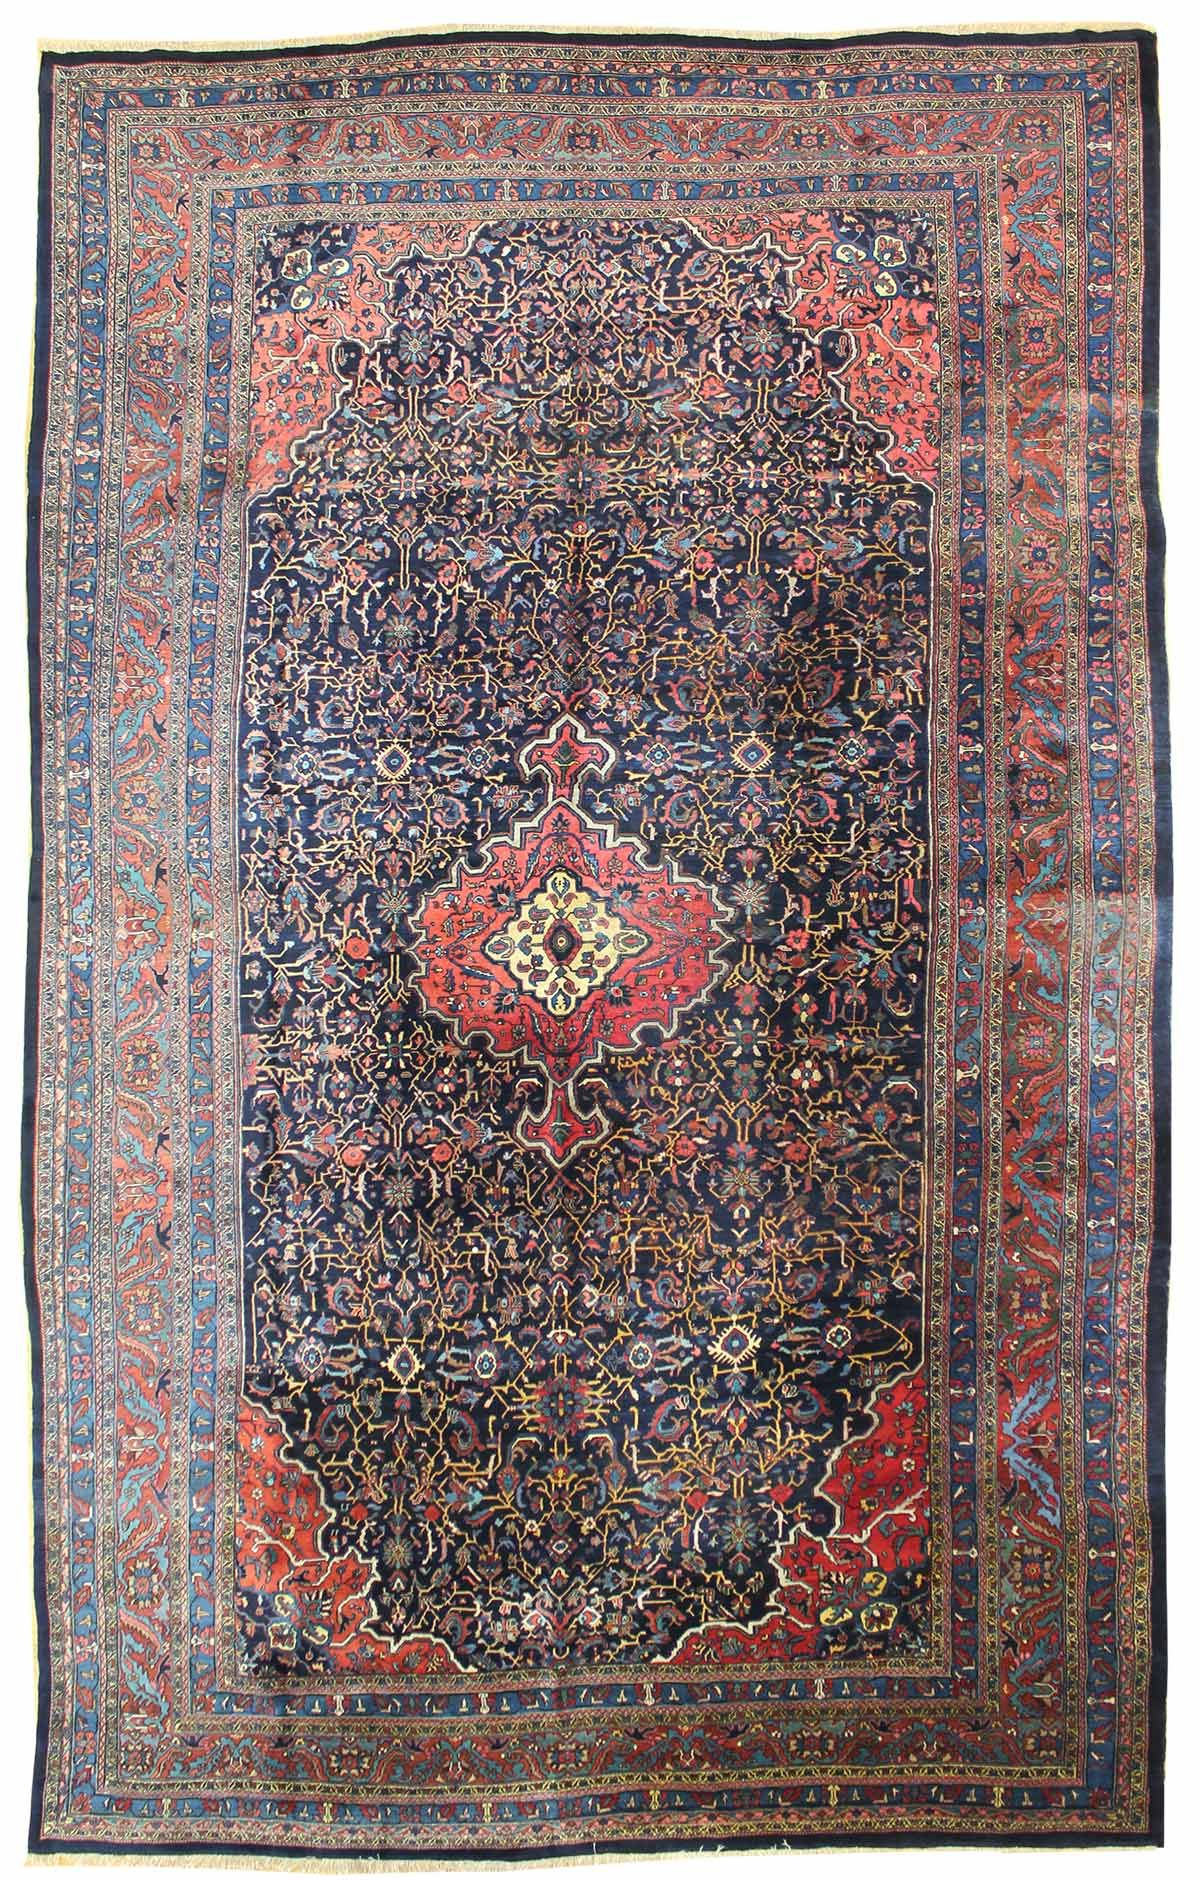 Antique Bijar Rugs Gallery Antique Bijar Rug Hand Knotted In Persia Size 10 Feet 9 Inch Es X 20 Feet 2 Inch Es Rugs Homemade Rugs Rugs Australia